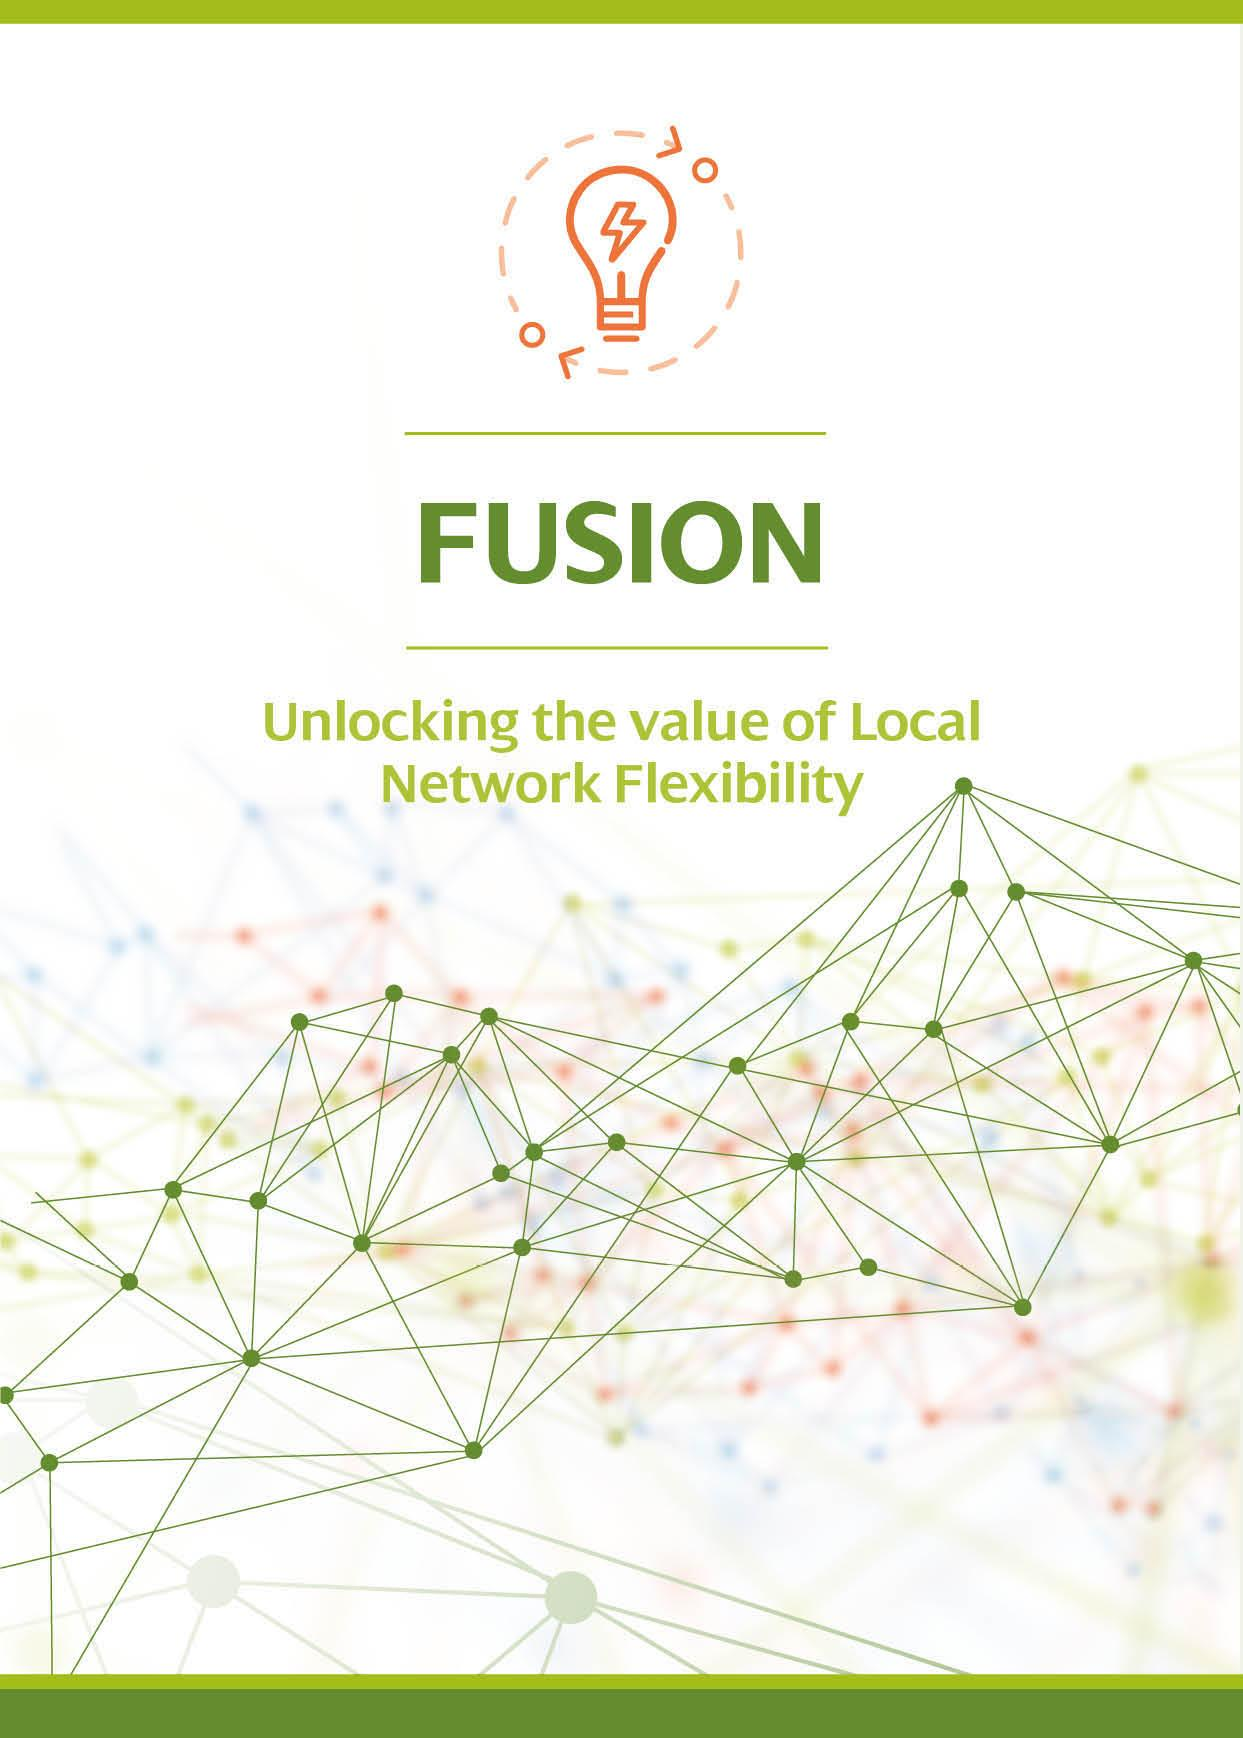 Fusion project fact card visual version